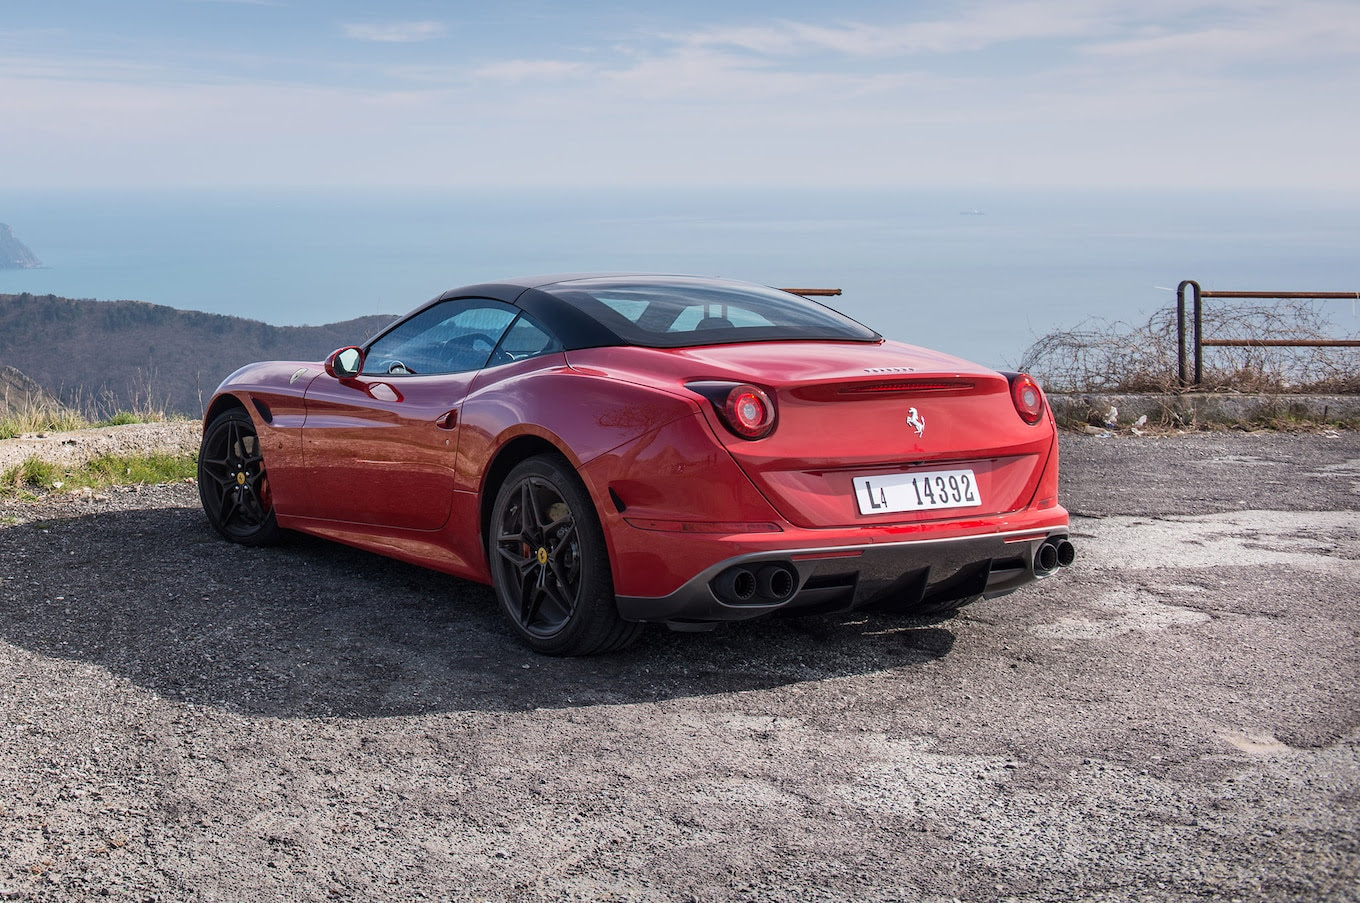 Ferrari California T 2017 Review, Specification, Price, Concept